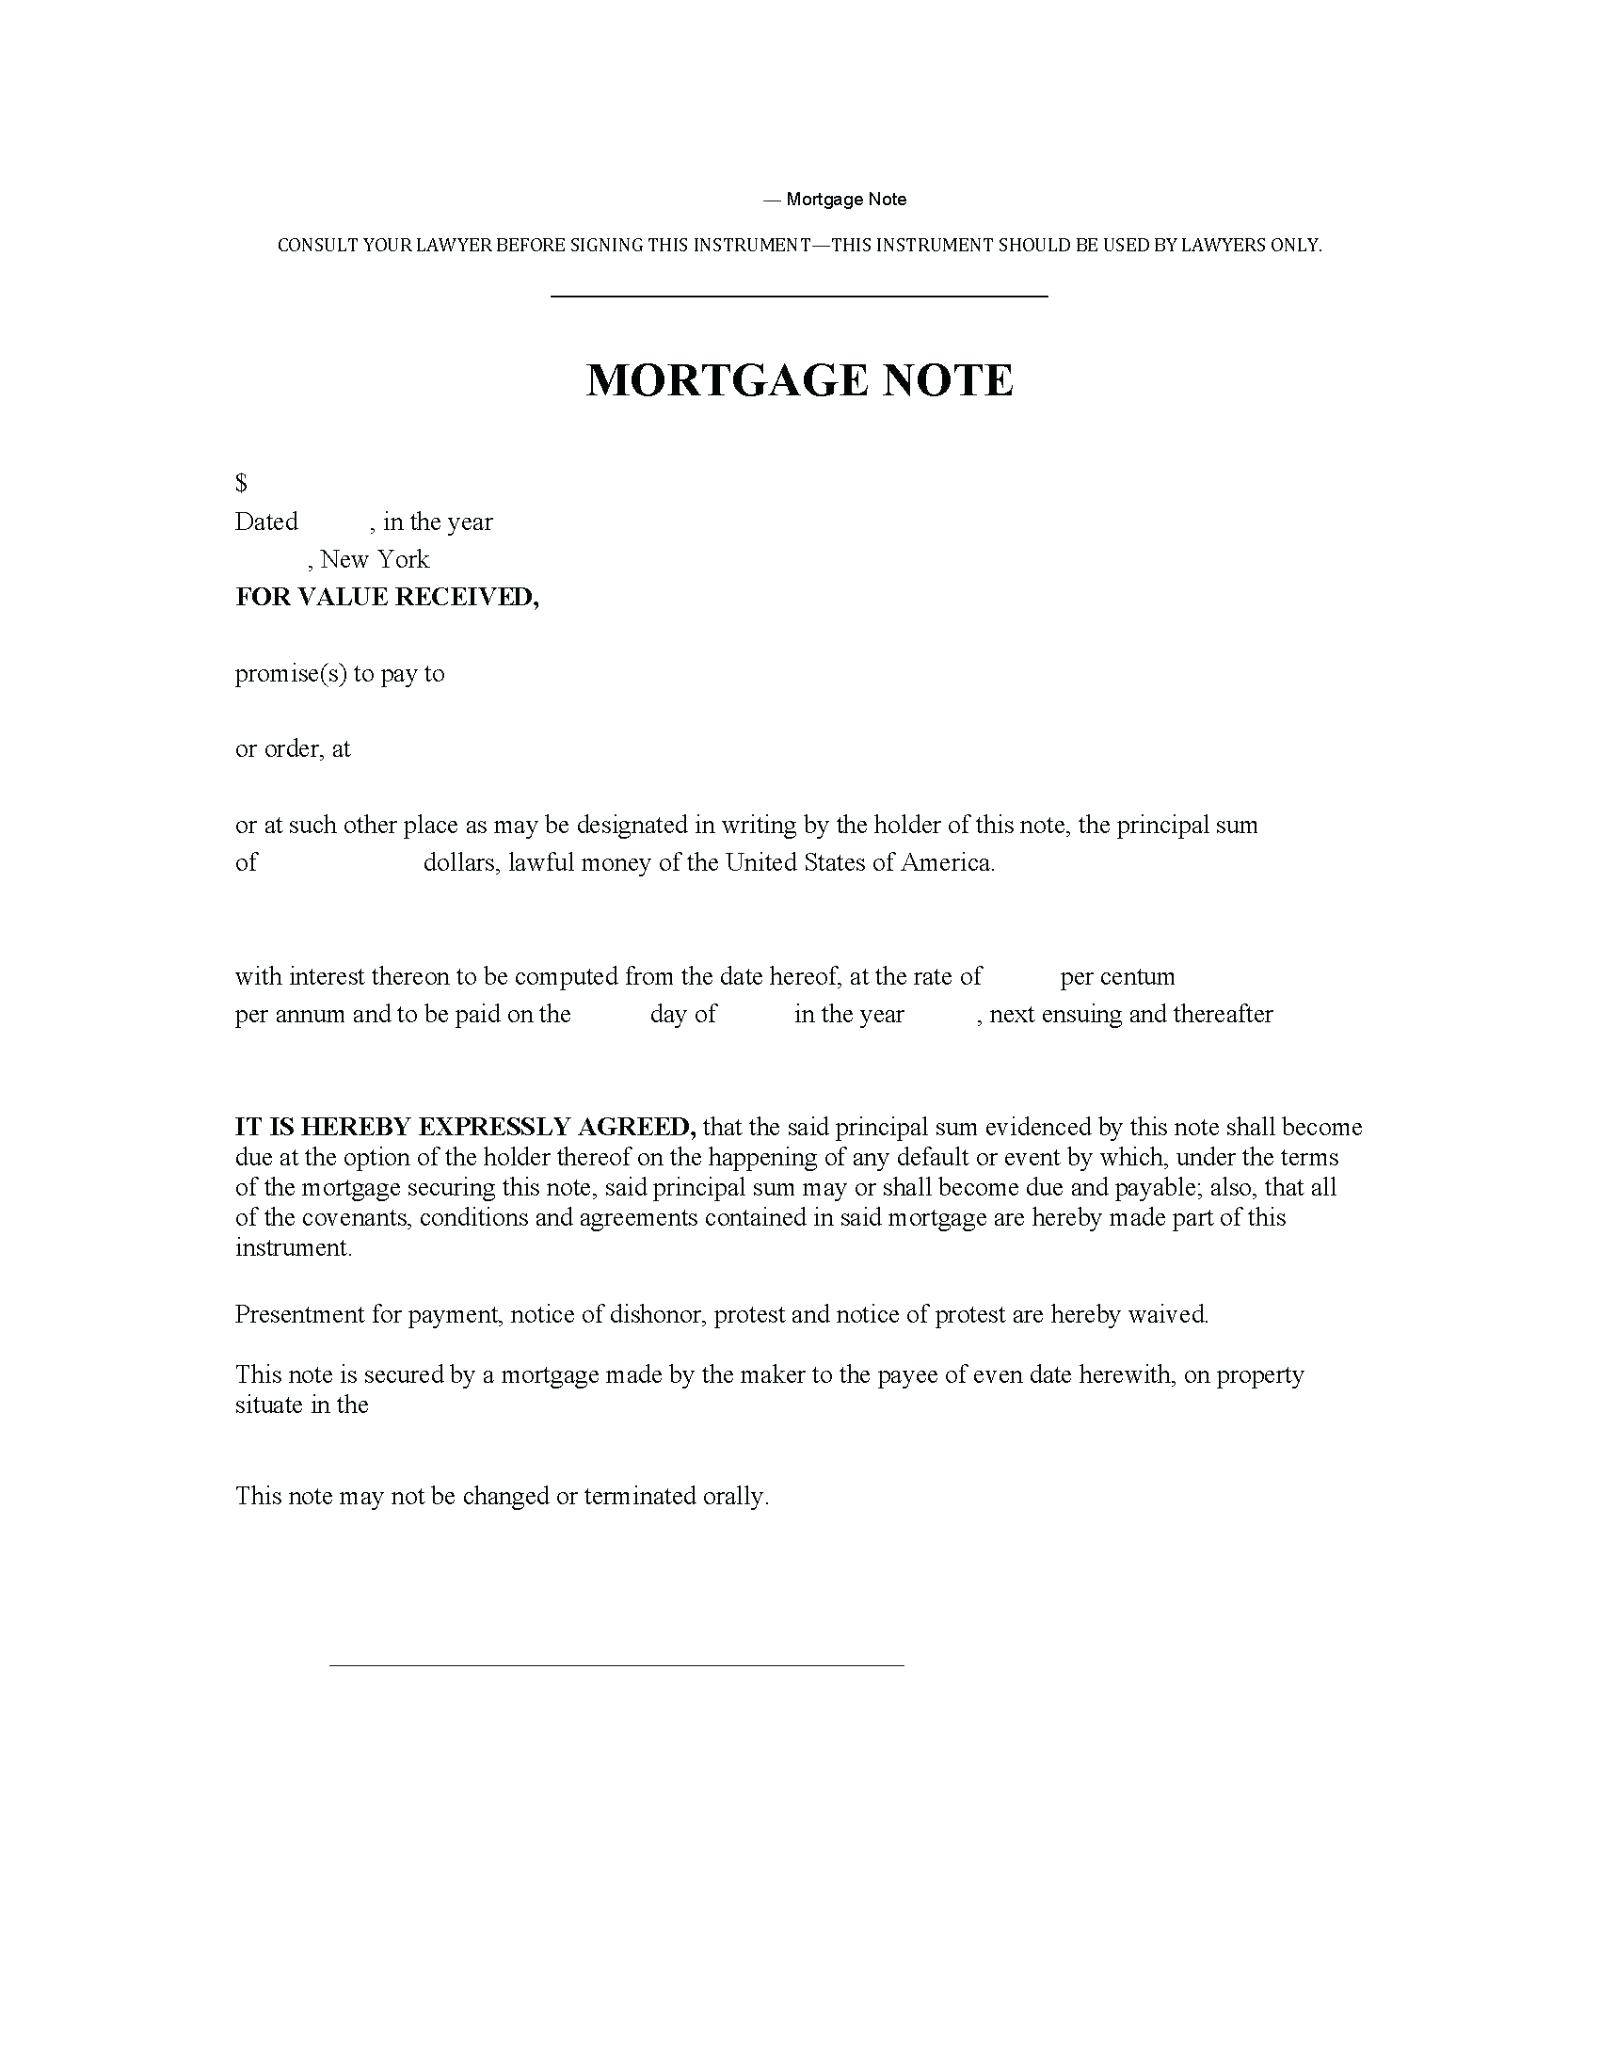 Second Mortgage Agreement Template